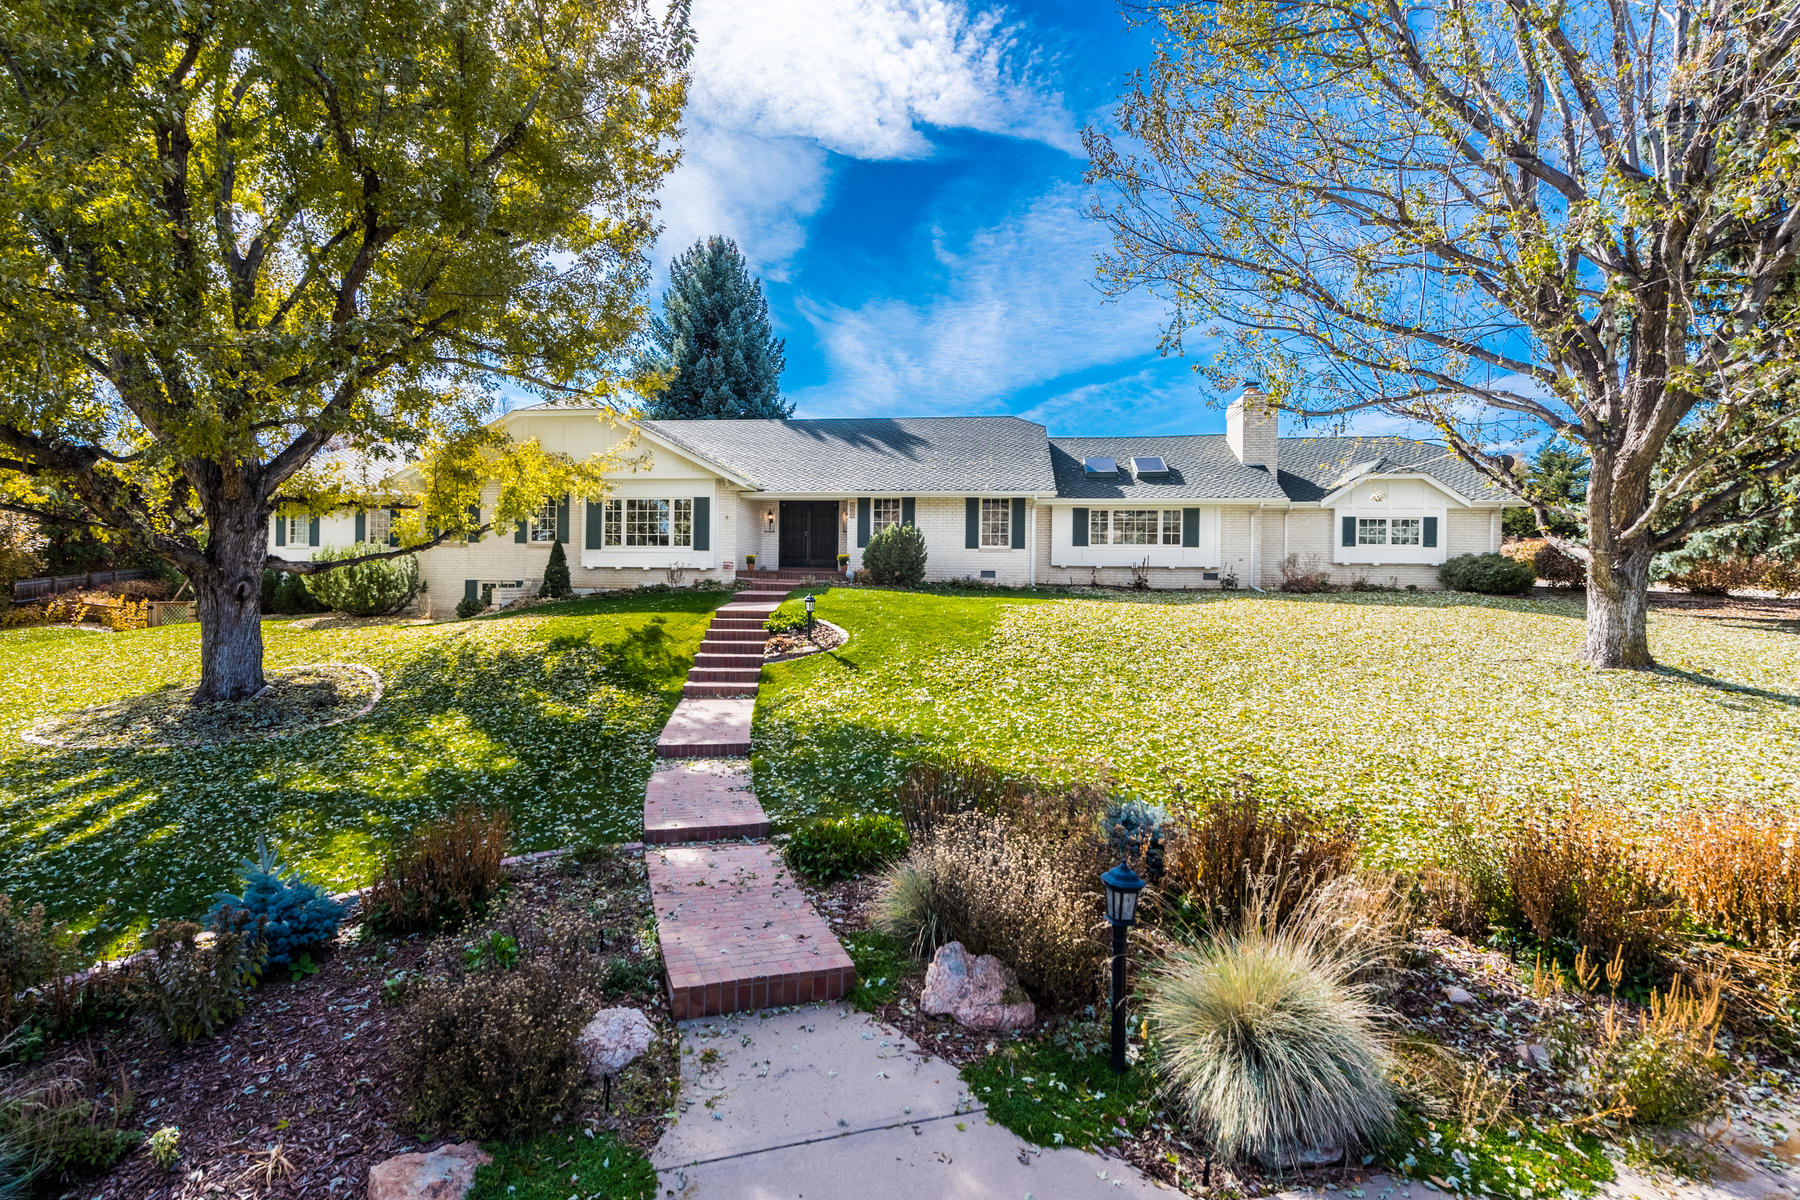 Single Family Home for Active at Cherryridge - rare opportunity to create your dream home 3260 Cherryridge Rd Cherry Hills Village, Colorado 80111 United States